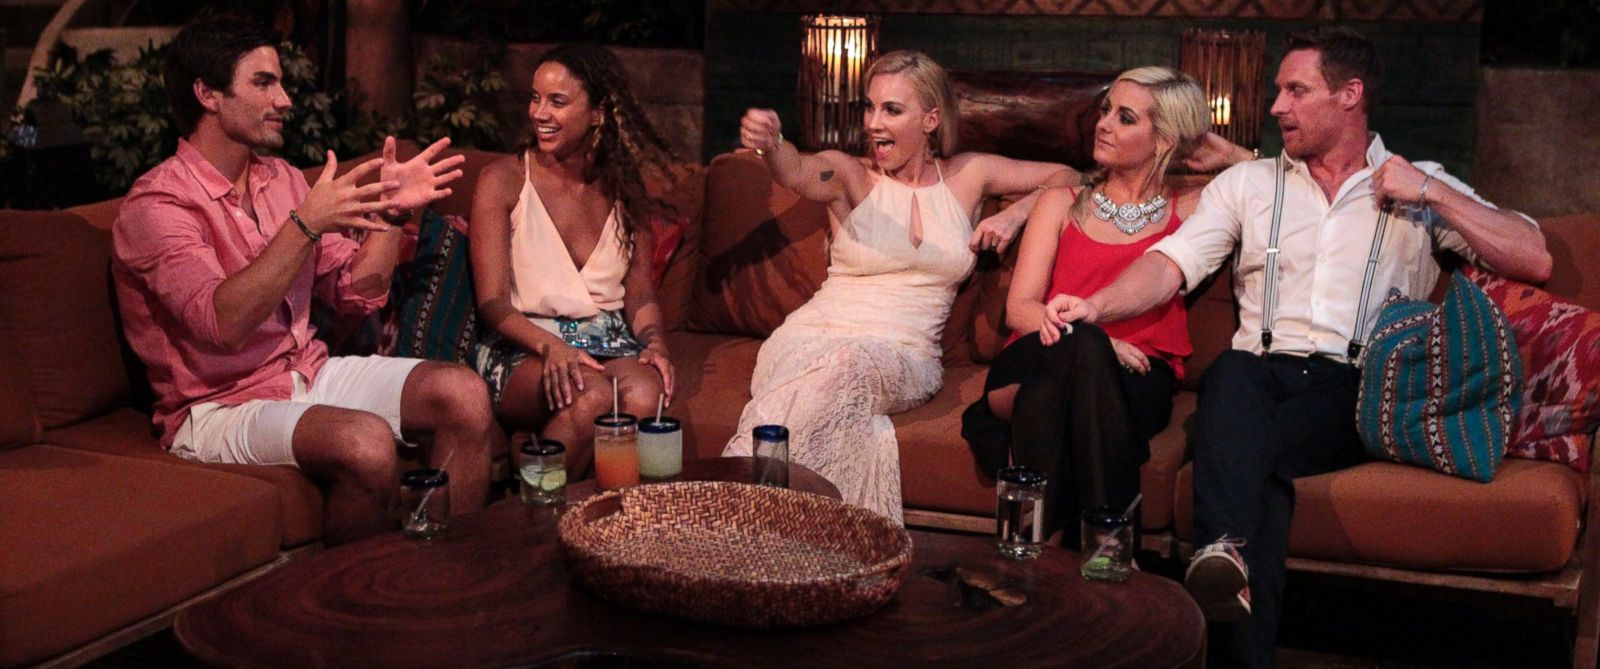 """PHOTO: Jared Haibon, Amber James, Megan Bell, Carly Waddell and Kirk Dewindt appear in """"Bachelor in Paradise"""" on Aug. 17, 2015."""